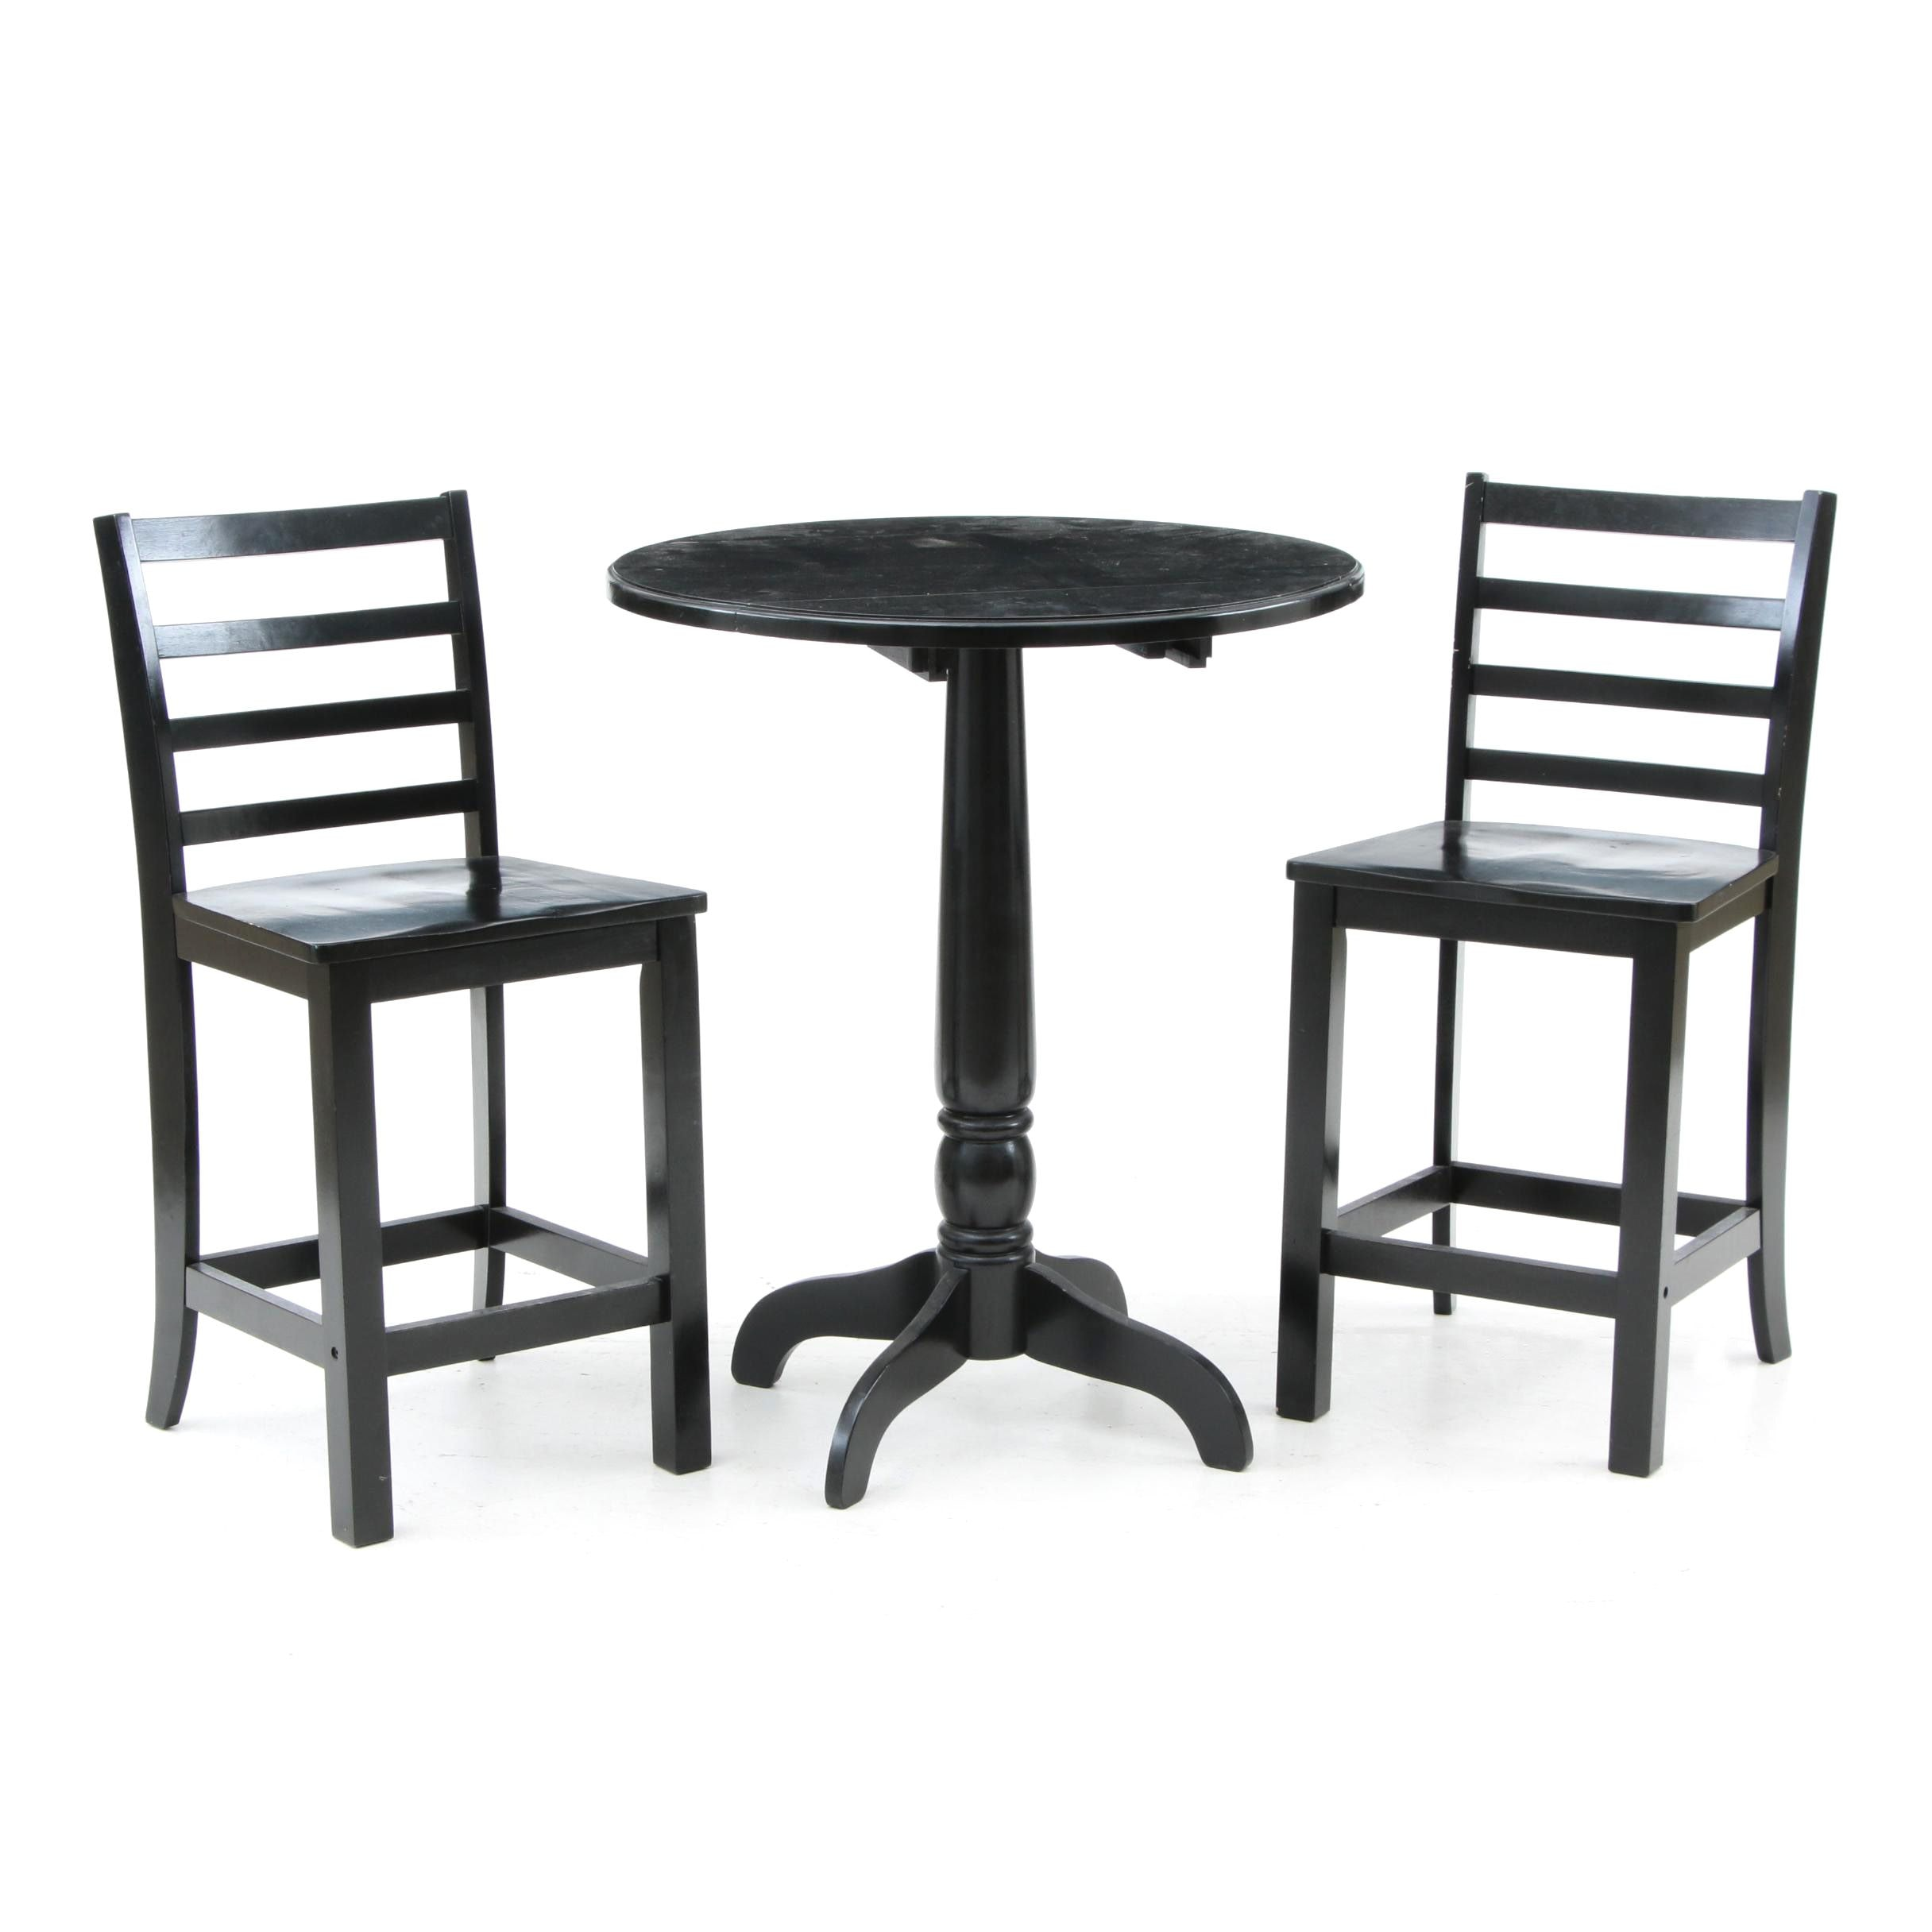 Drop Leaf Bar Height Table and Chairs in Black